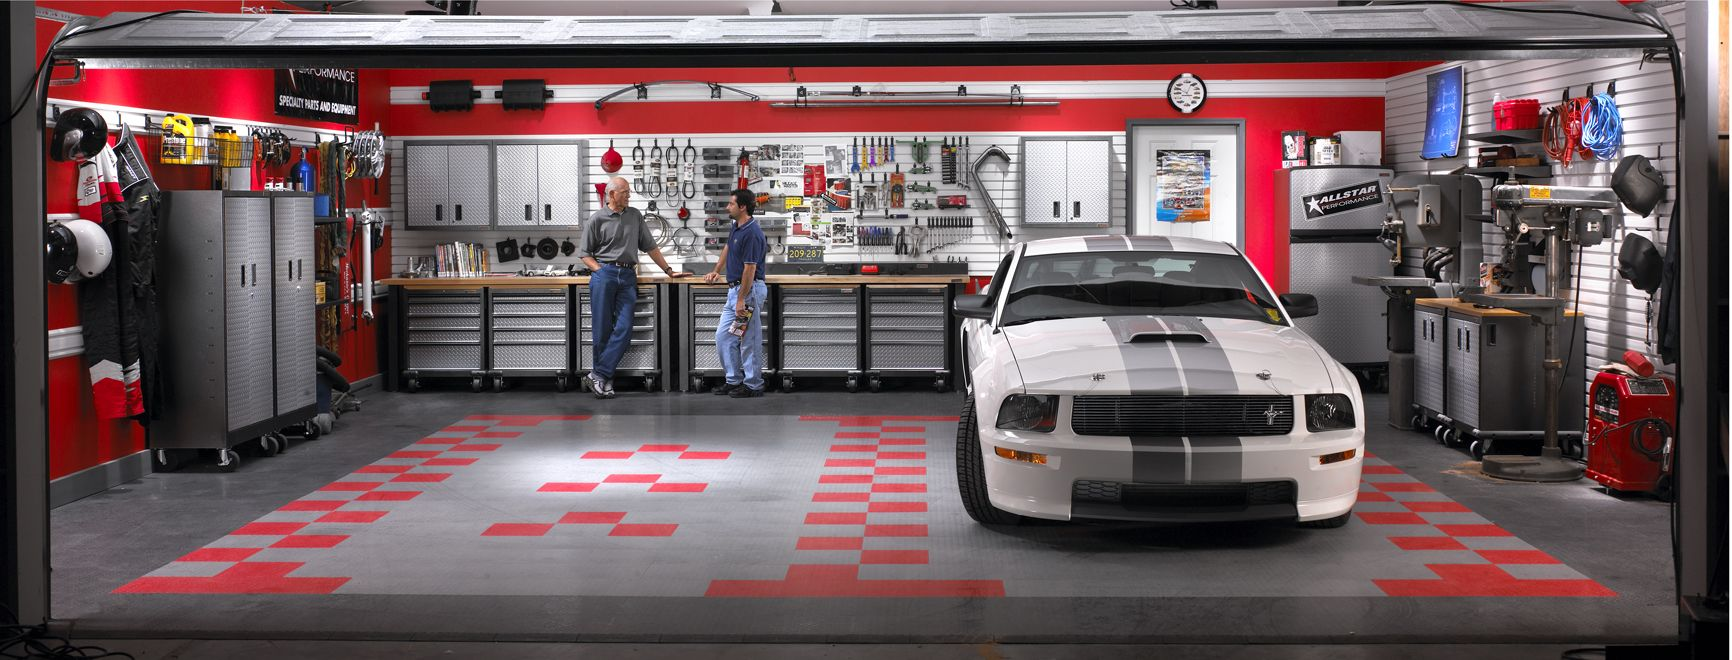 Dream garage garage cabinets garage floor tiles - By Carrying The Full Line Of Gladiator Garageworks Abt Makes It Easy To Find Exactly What You Need To Organize And Utilize Space In Your Garage